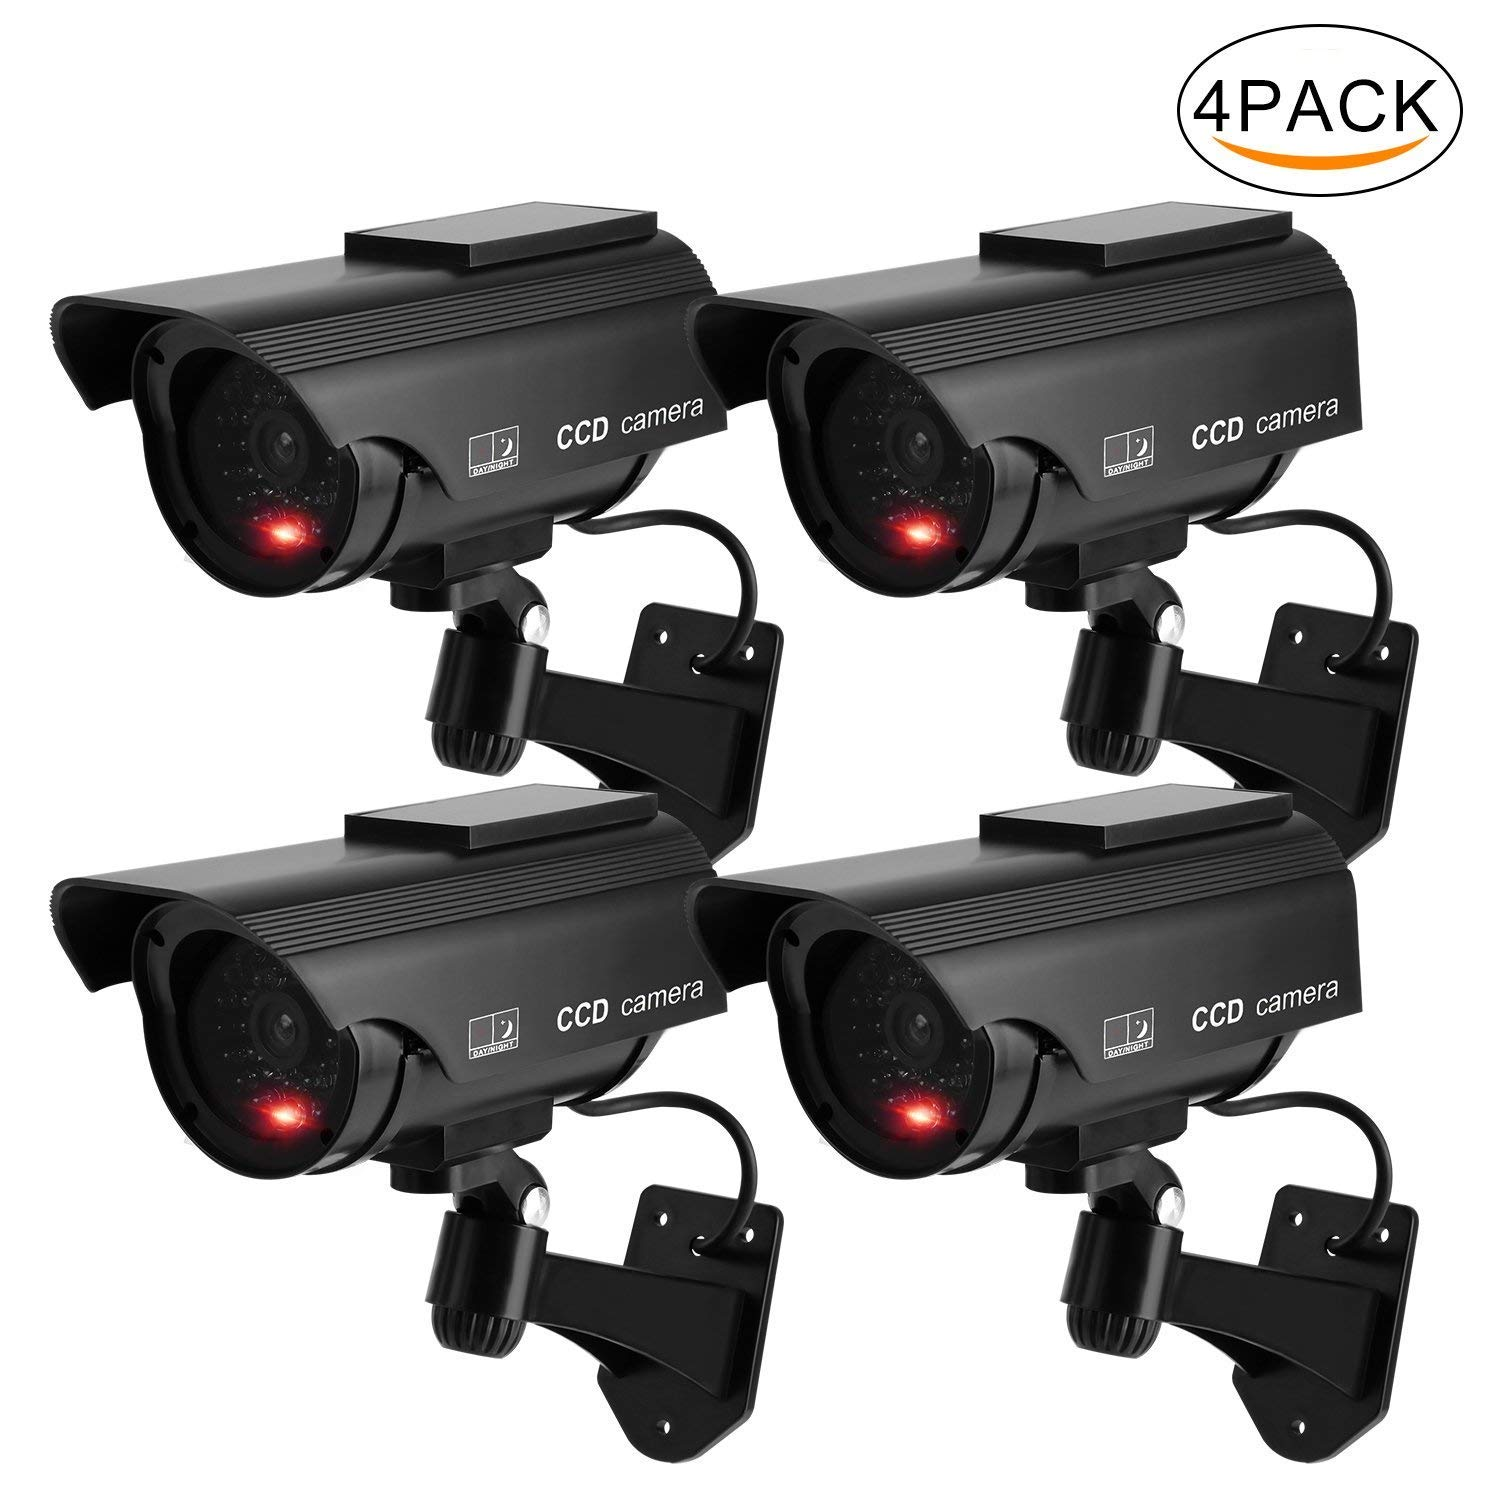 Z&HA Solar Virtual Surveillance Camera/Outdoor False Camera,Simulating A Home Security CCTV Camera,Waterproof/with LED Flashing Light for Family and Business,4Packs